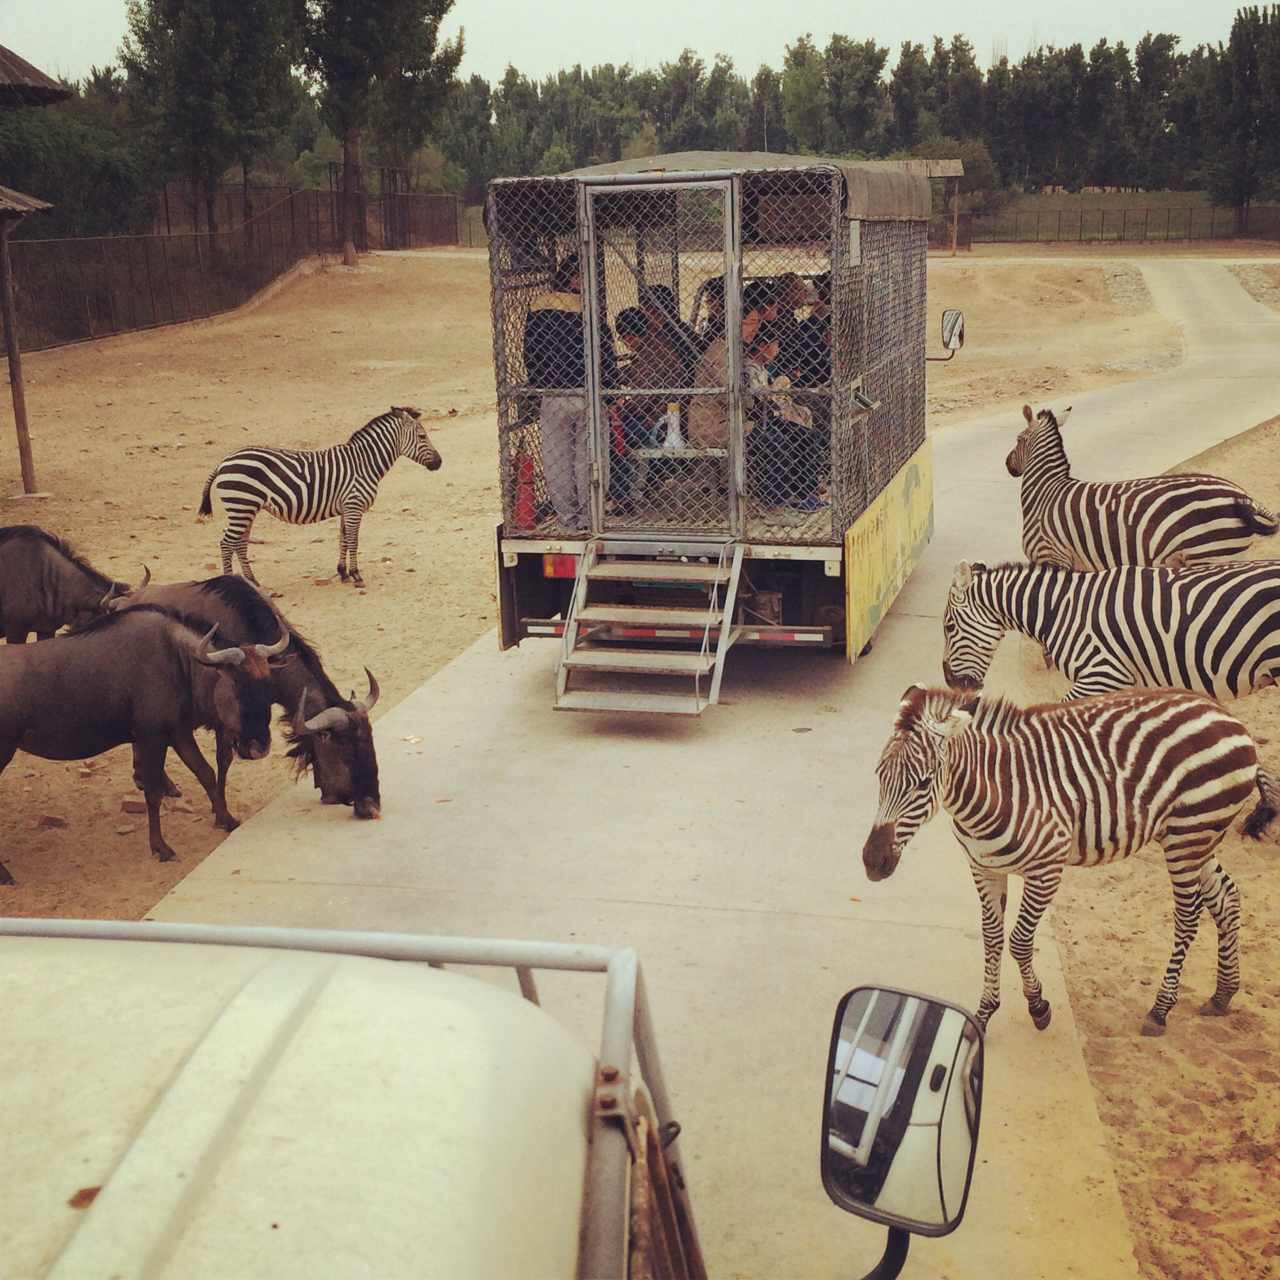 Zoo visitors locked in a cage drive through the African wildlife enclosure. Beijing.